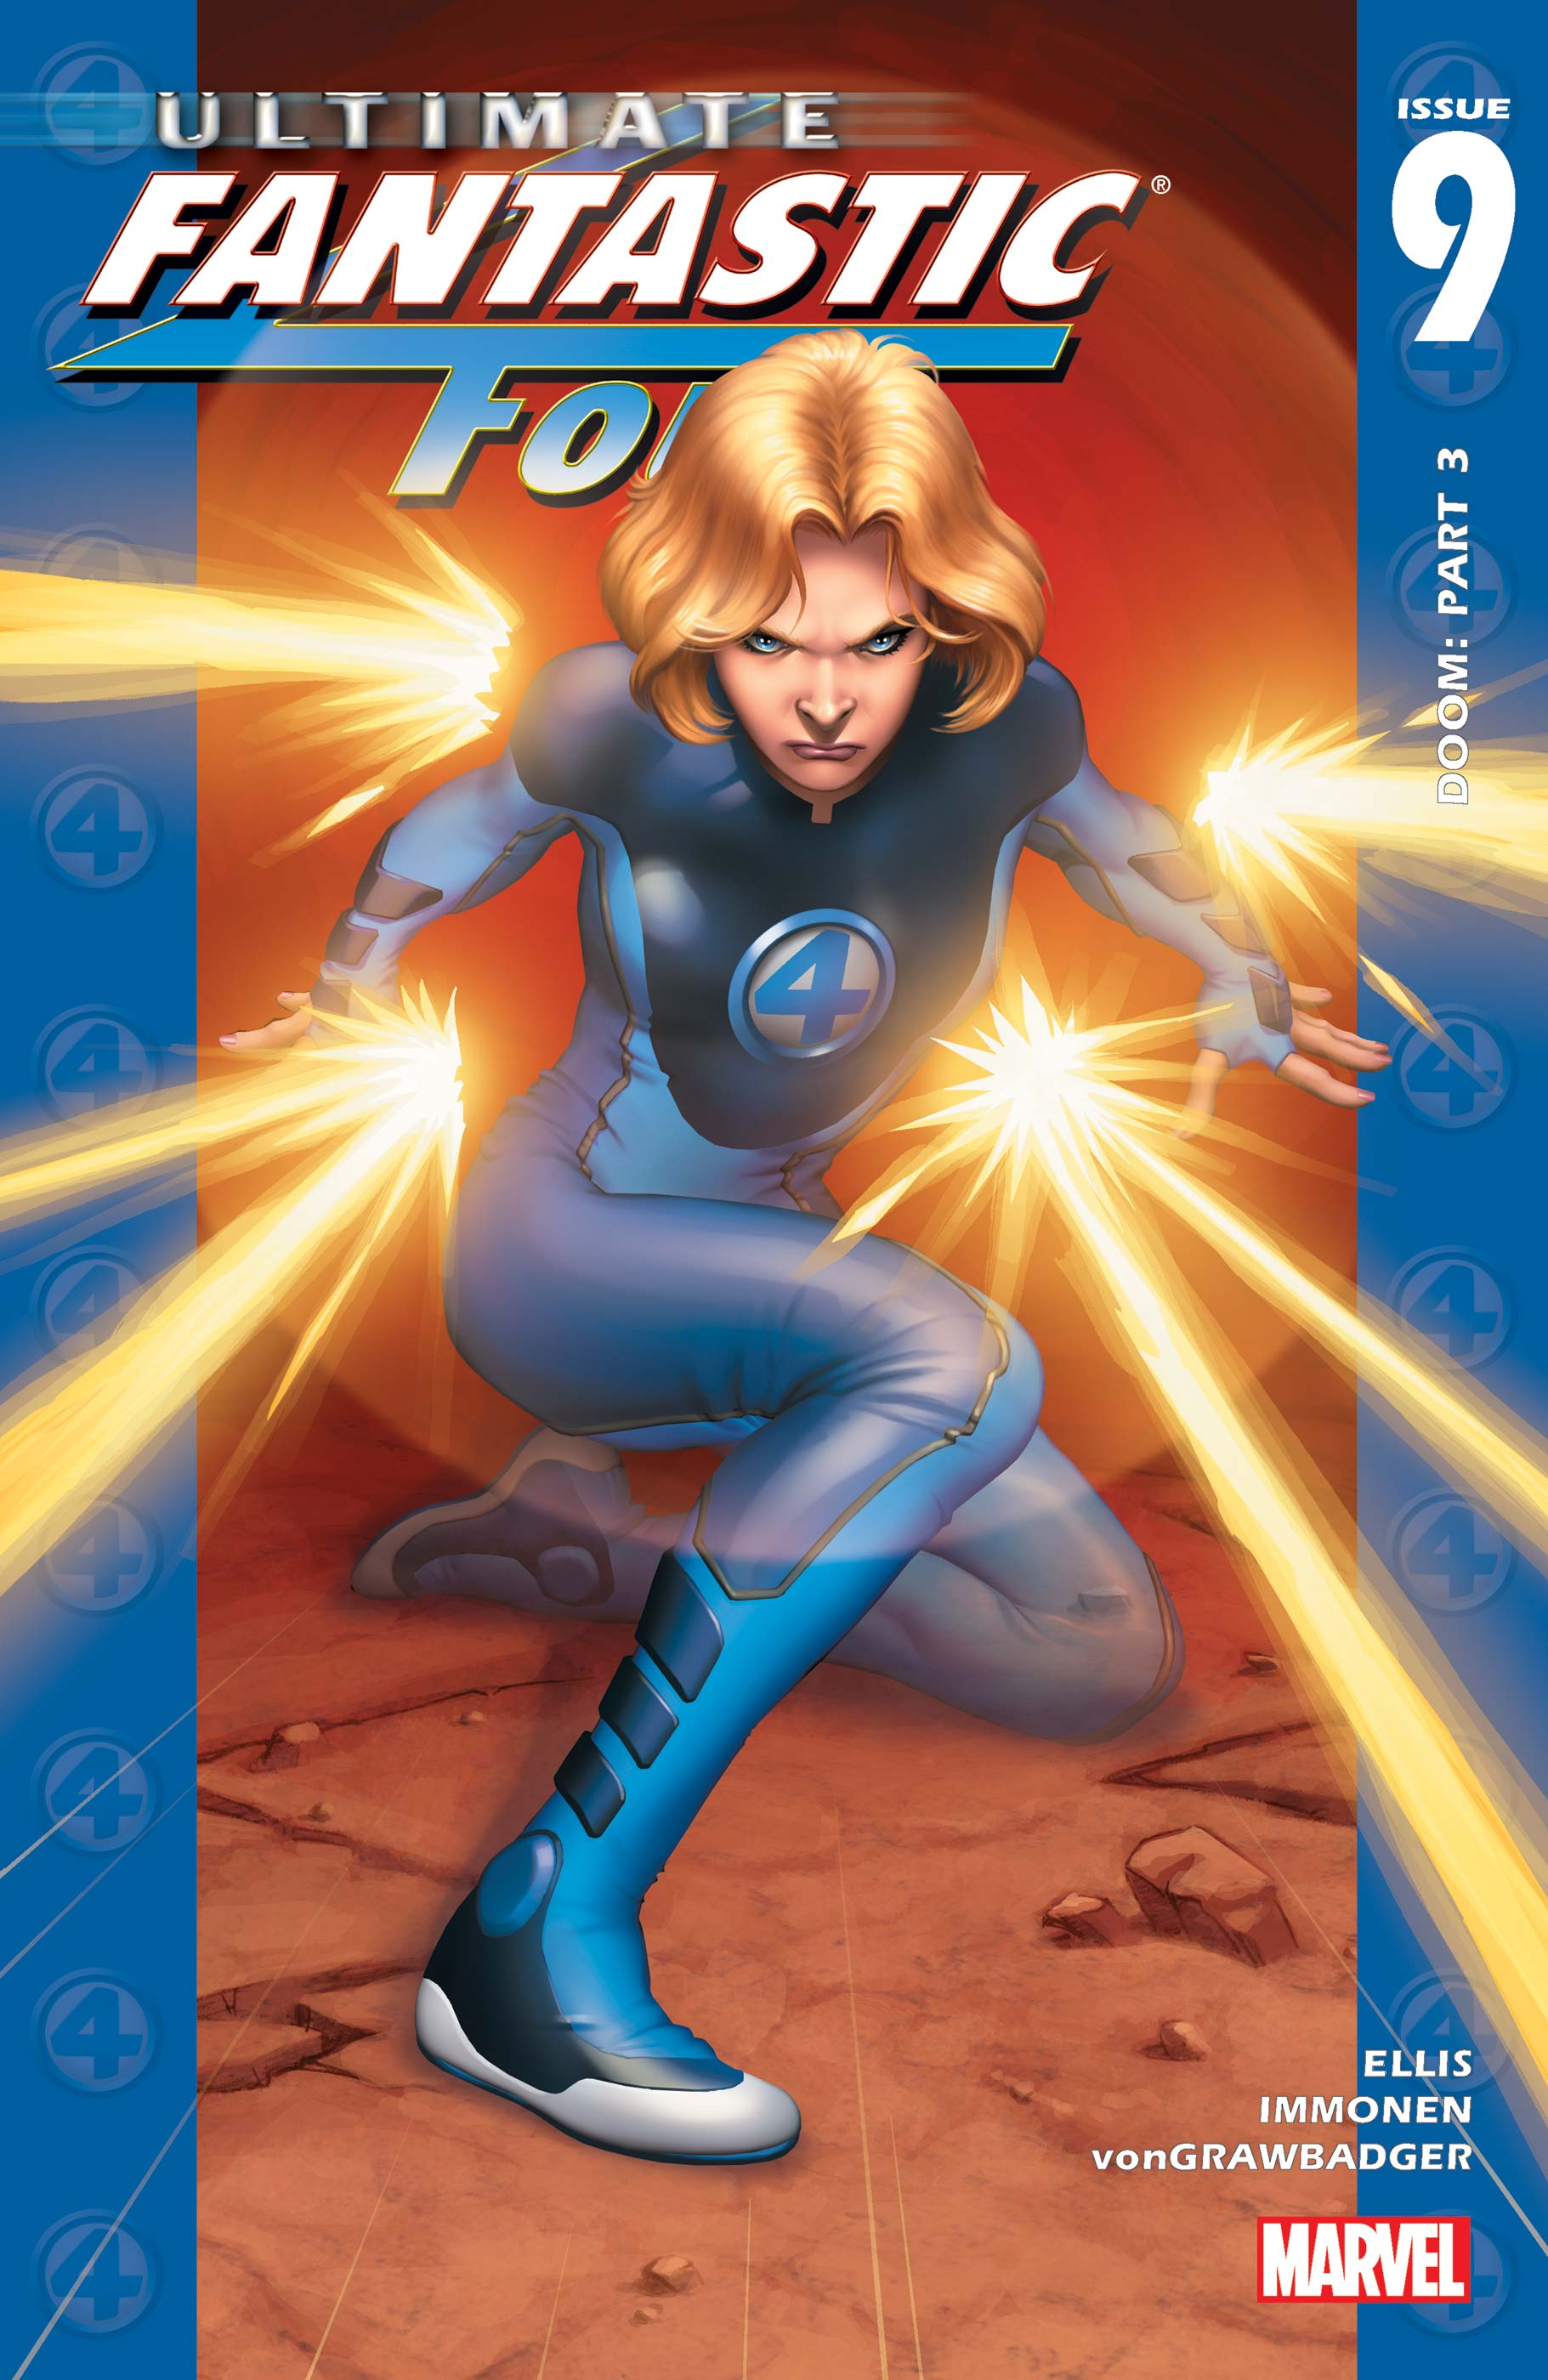 Ultimate Fantastic Four (2003) #9